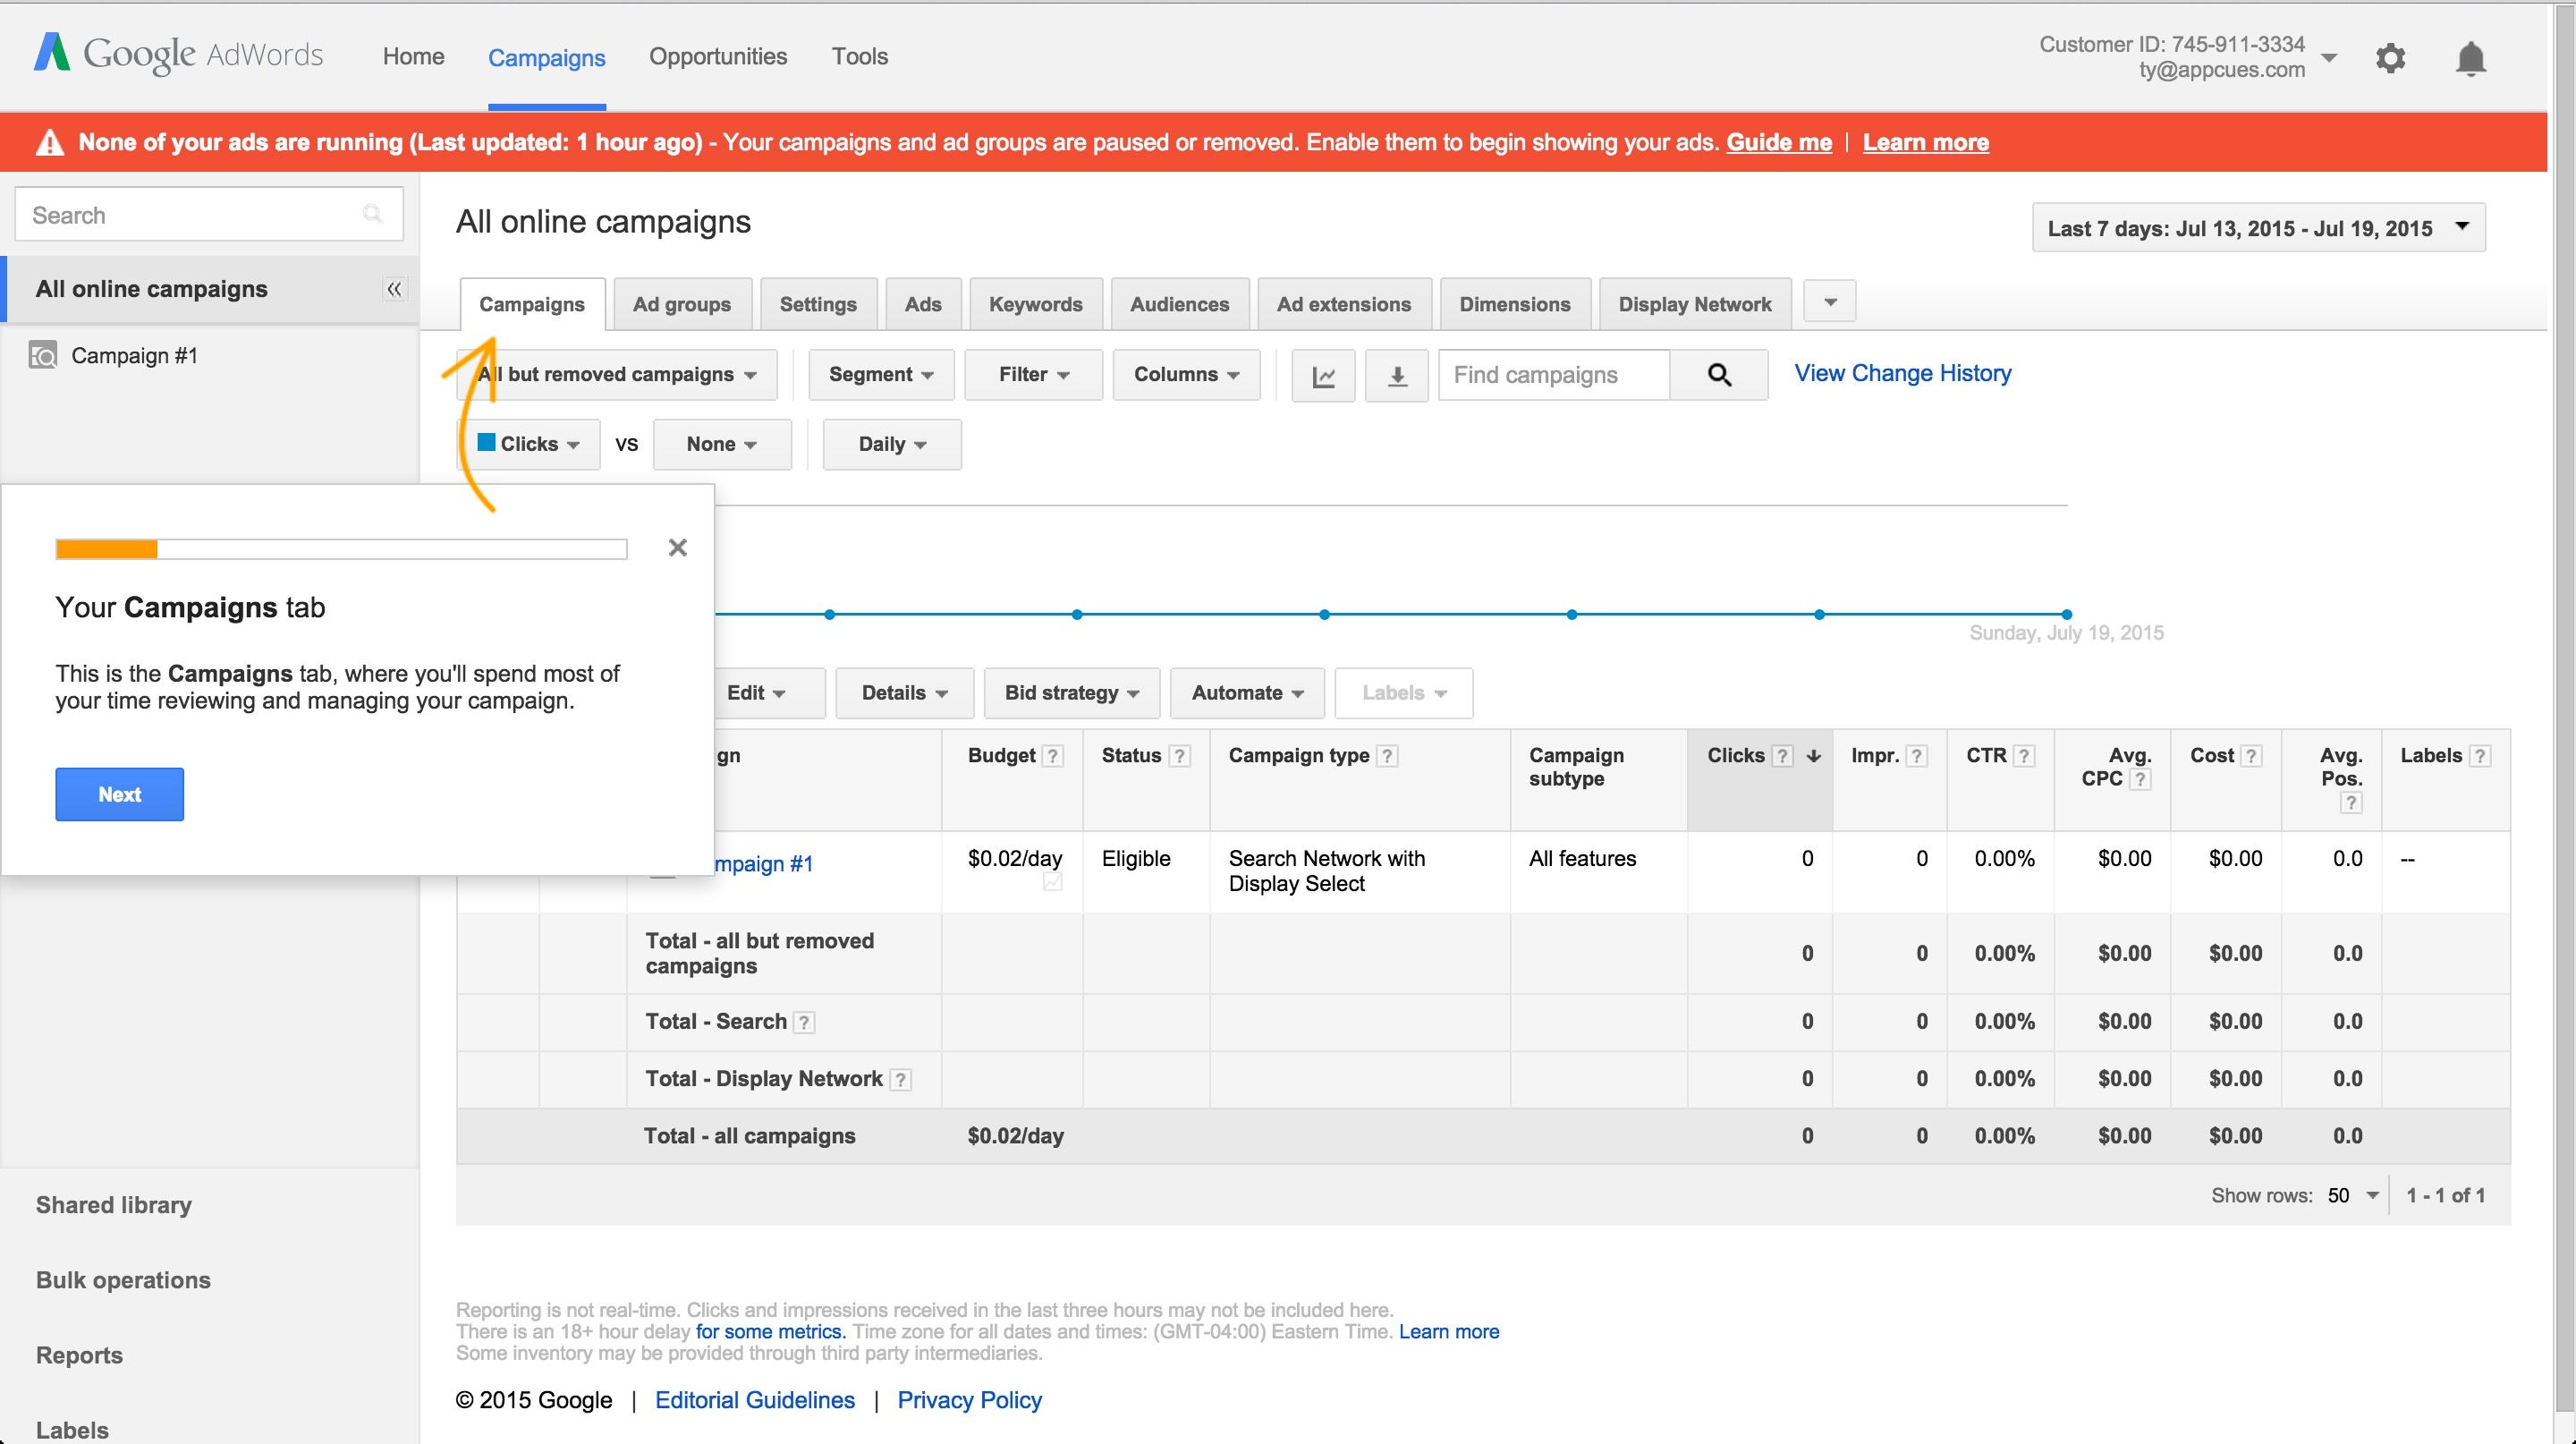 Adwords onboarding tour step 2